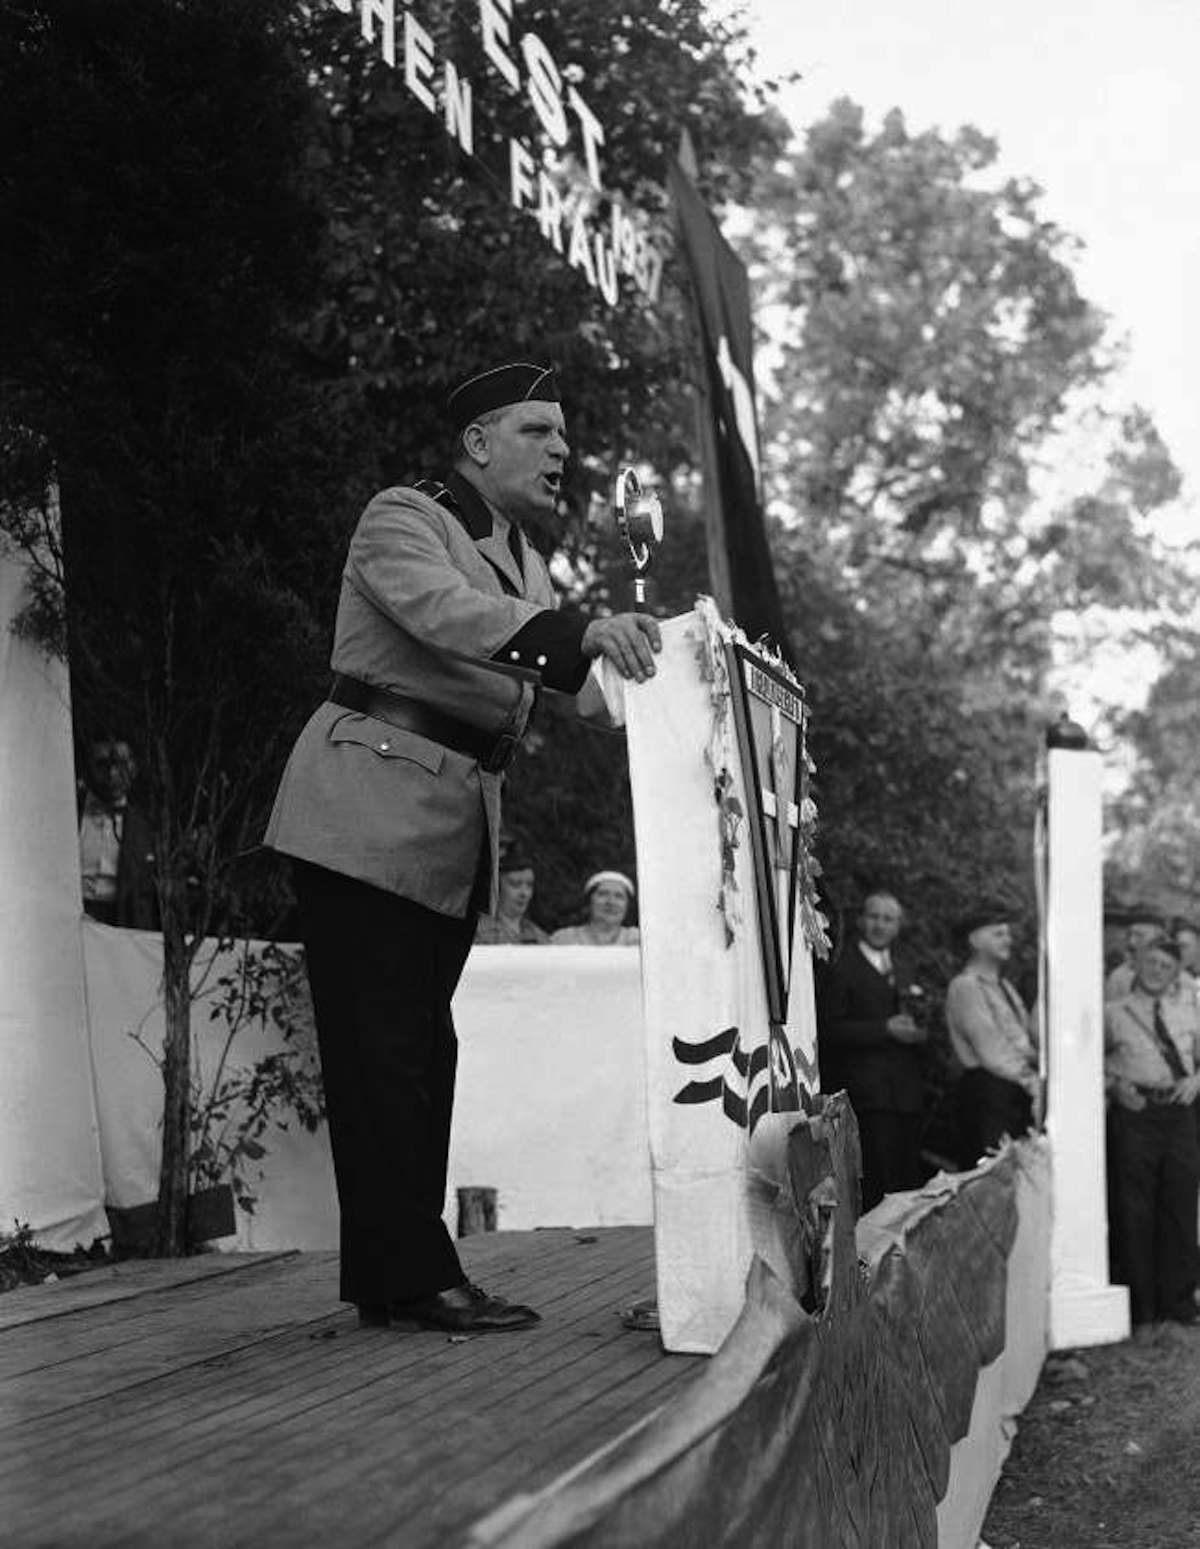 Answering charges that the German-American Volksbund is engaged in un-American activity, Fritz Kuhn, above, told thousands gathered camp Nordland, Andover, New Jersey on Sept. 26, 1937, the groups' activities are founded on patriotic lines. He said the bund will continue its fight for Americanism until America is controlled by Americans and by a bunch of Russian-controlled Jews. American flags outnumbered swastikas, but there was goose stepping and Nazi saluting